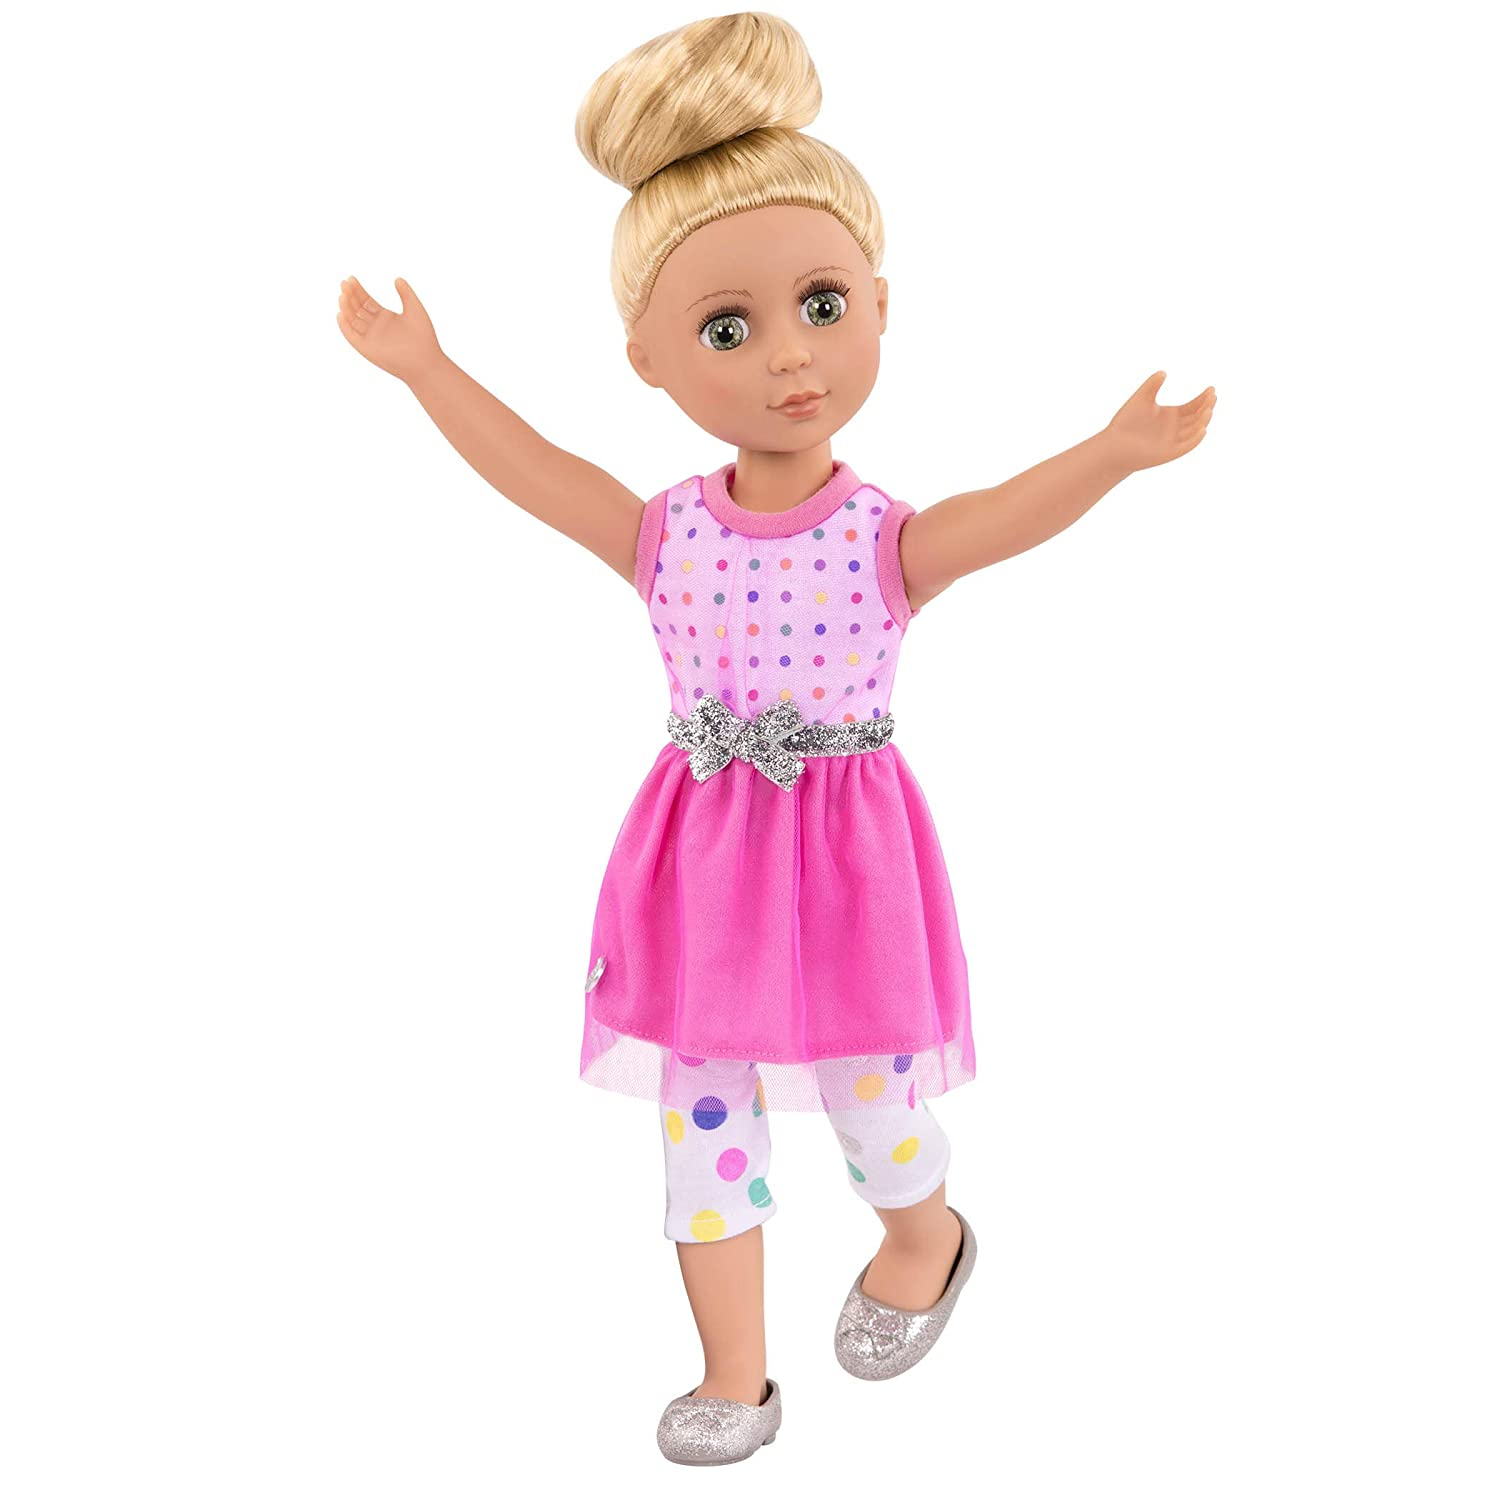 Glitter Girls by Battat - Stay Sparkly Dress and Leggings Regular Outfit -  14 inch Doll Clothes and Accessories for Girls Age 3 and Up – Children's  Toys